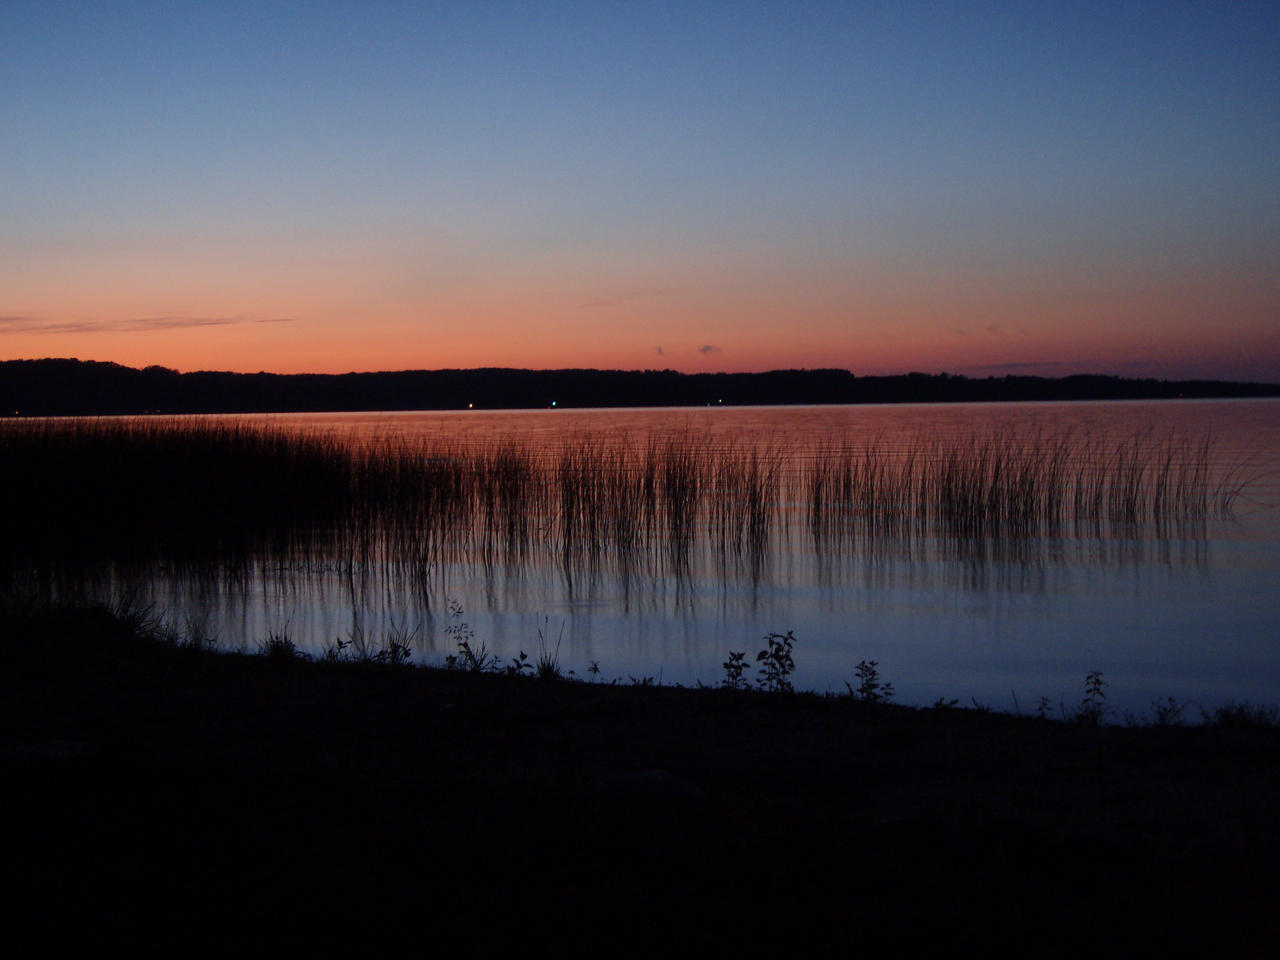 lake leelanau chat Get at&t high speed internet services in lake leelanau, mi  so you can video chat with friends and family, work from the home office, or just watch a movie, .